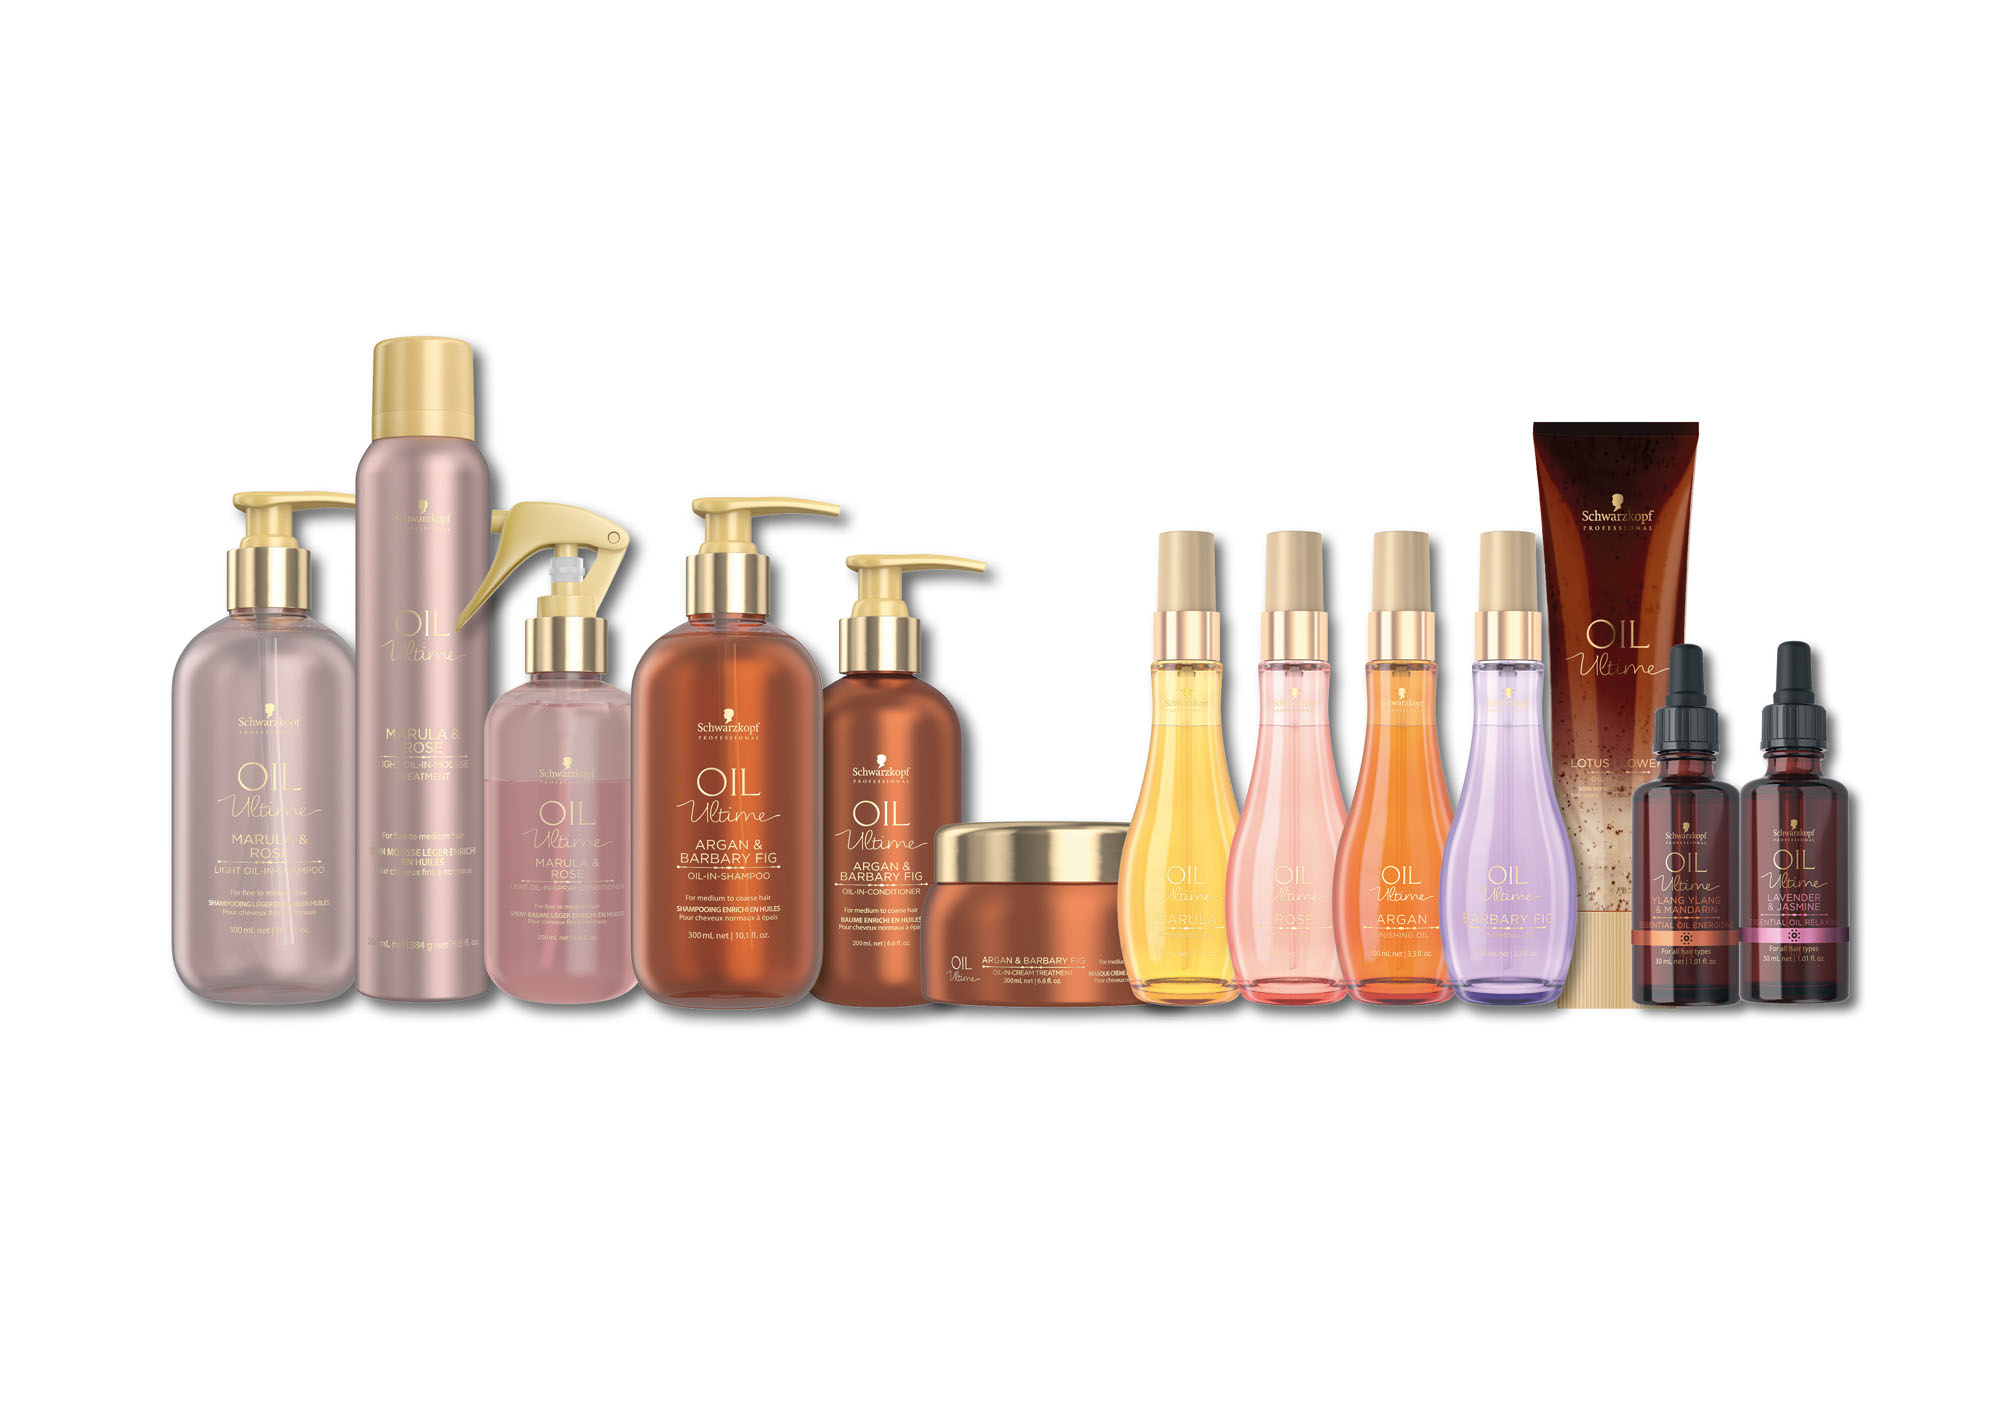 2c561e6666 Oils in hair care. New cosmetics by Schwarzkopf Professional OIL Ultime